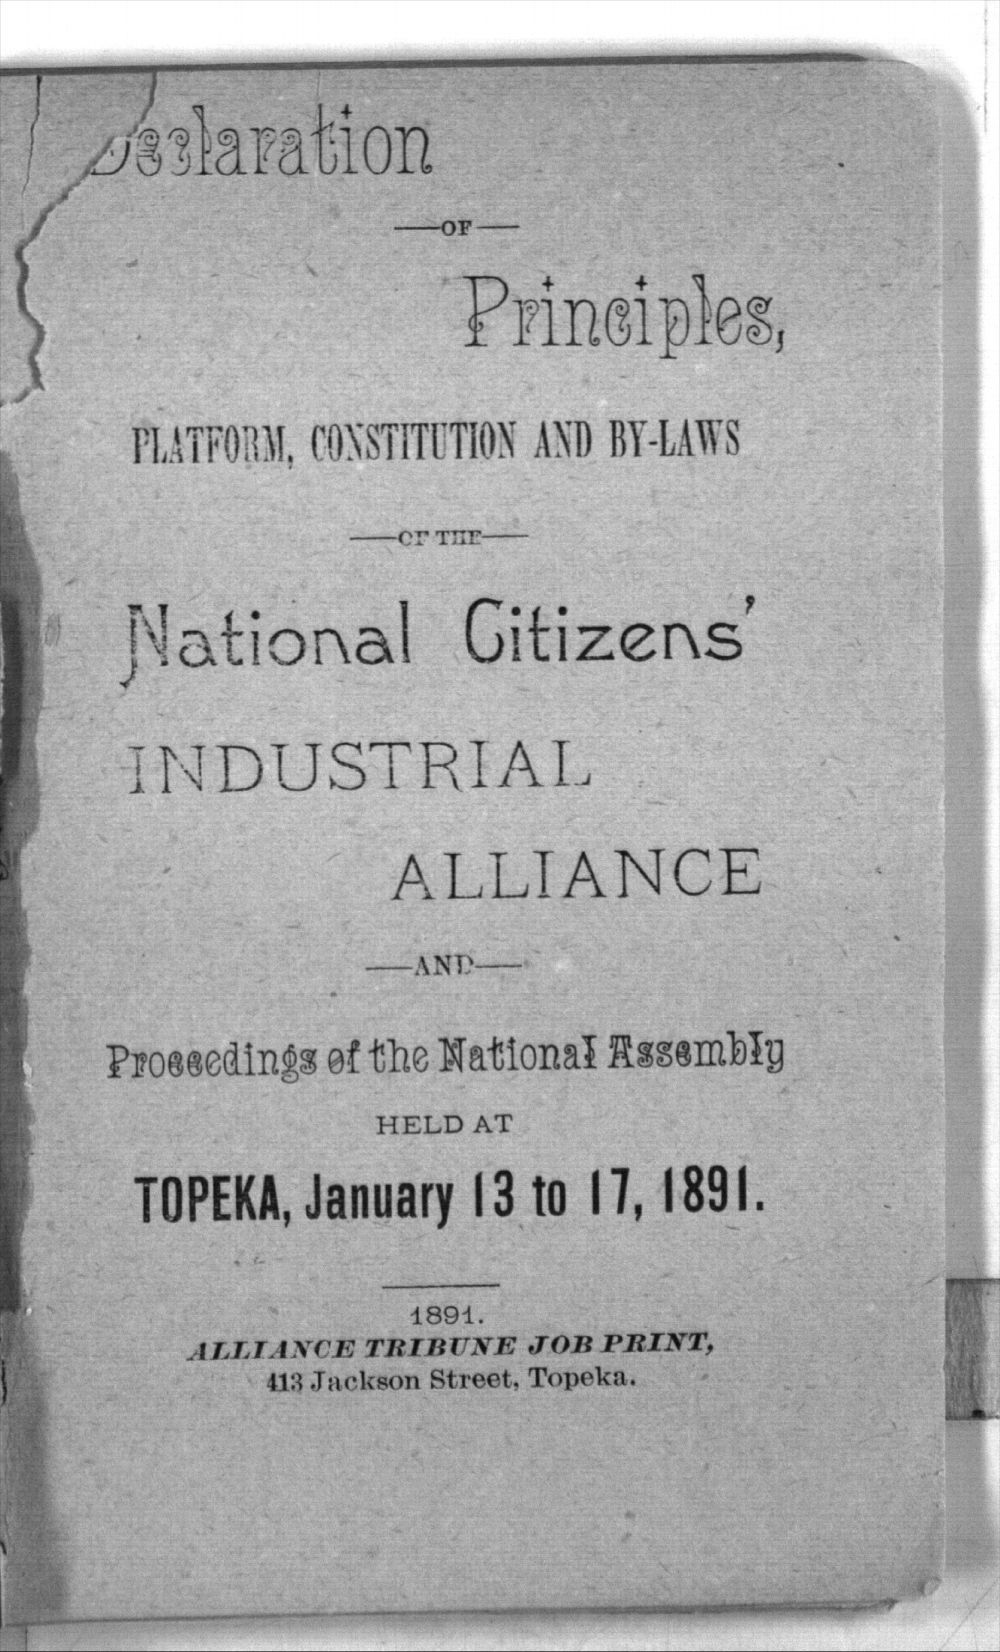 Declaration of principles, platform, constitution and by-laws of the National Citizens' Industrial Alliance and proceeding of the National Assembly held at Topeka, January 13 to 17, 1891 - Title page